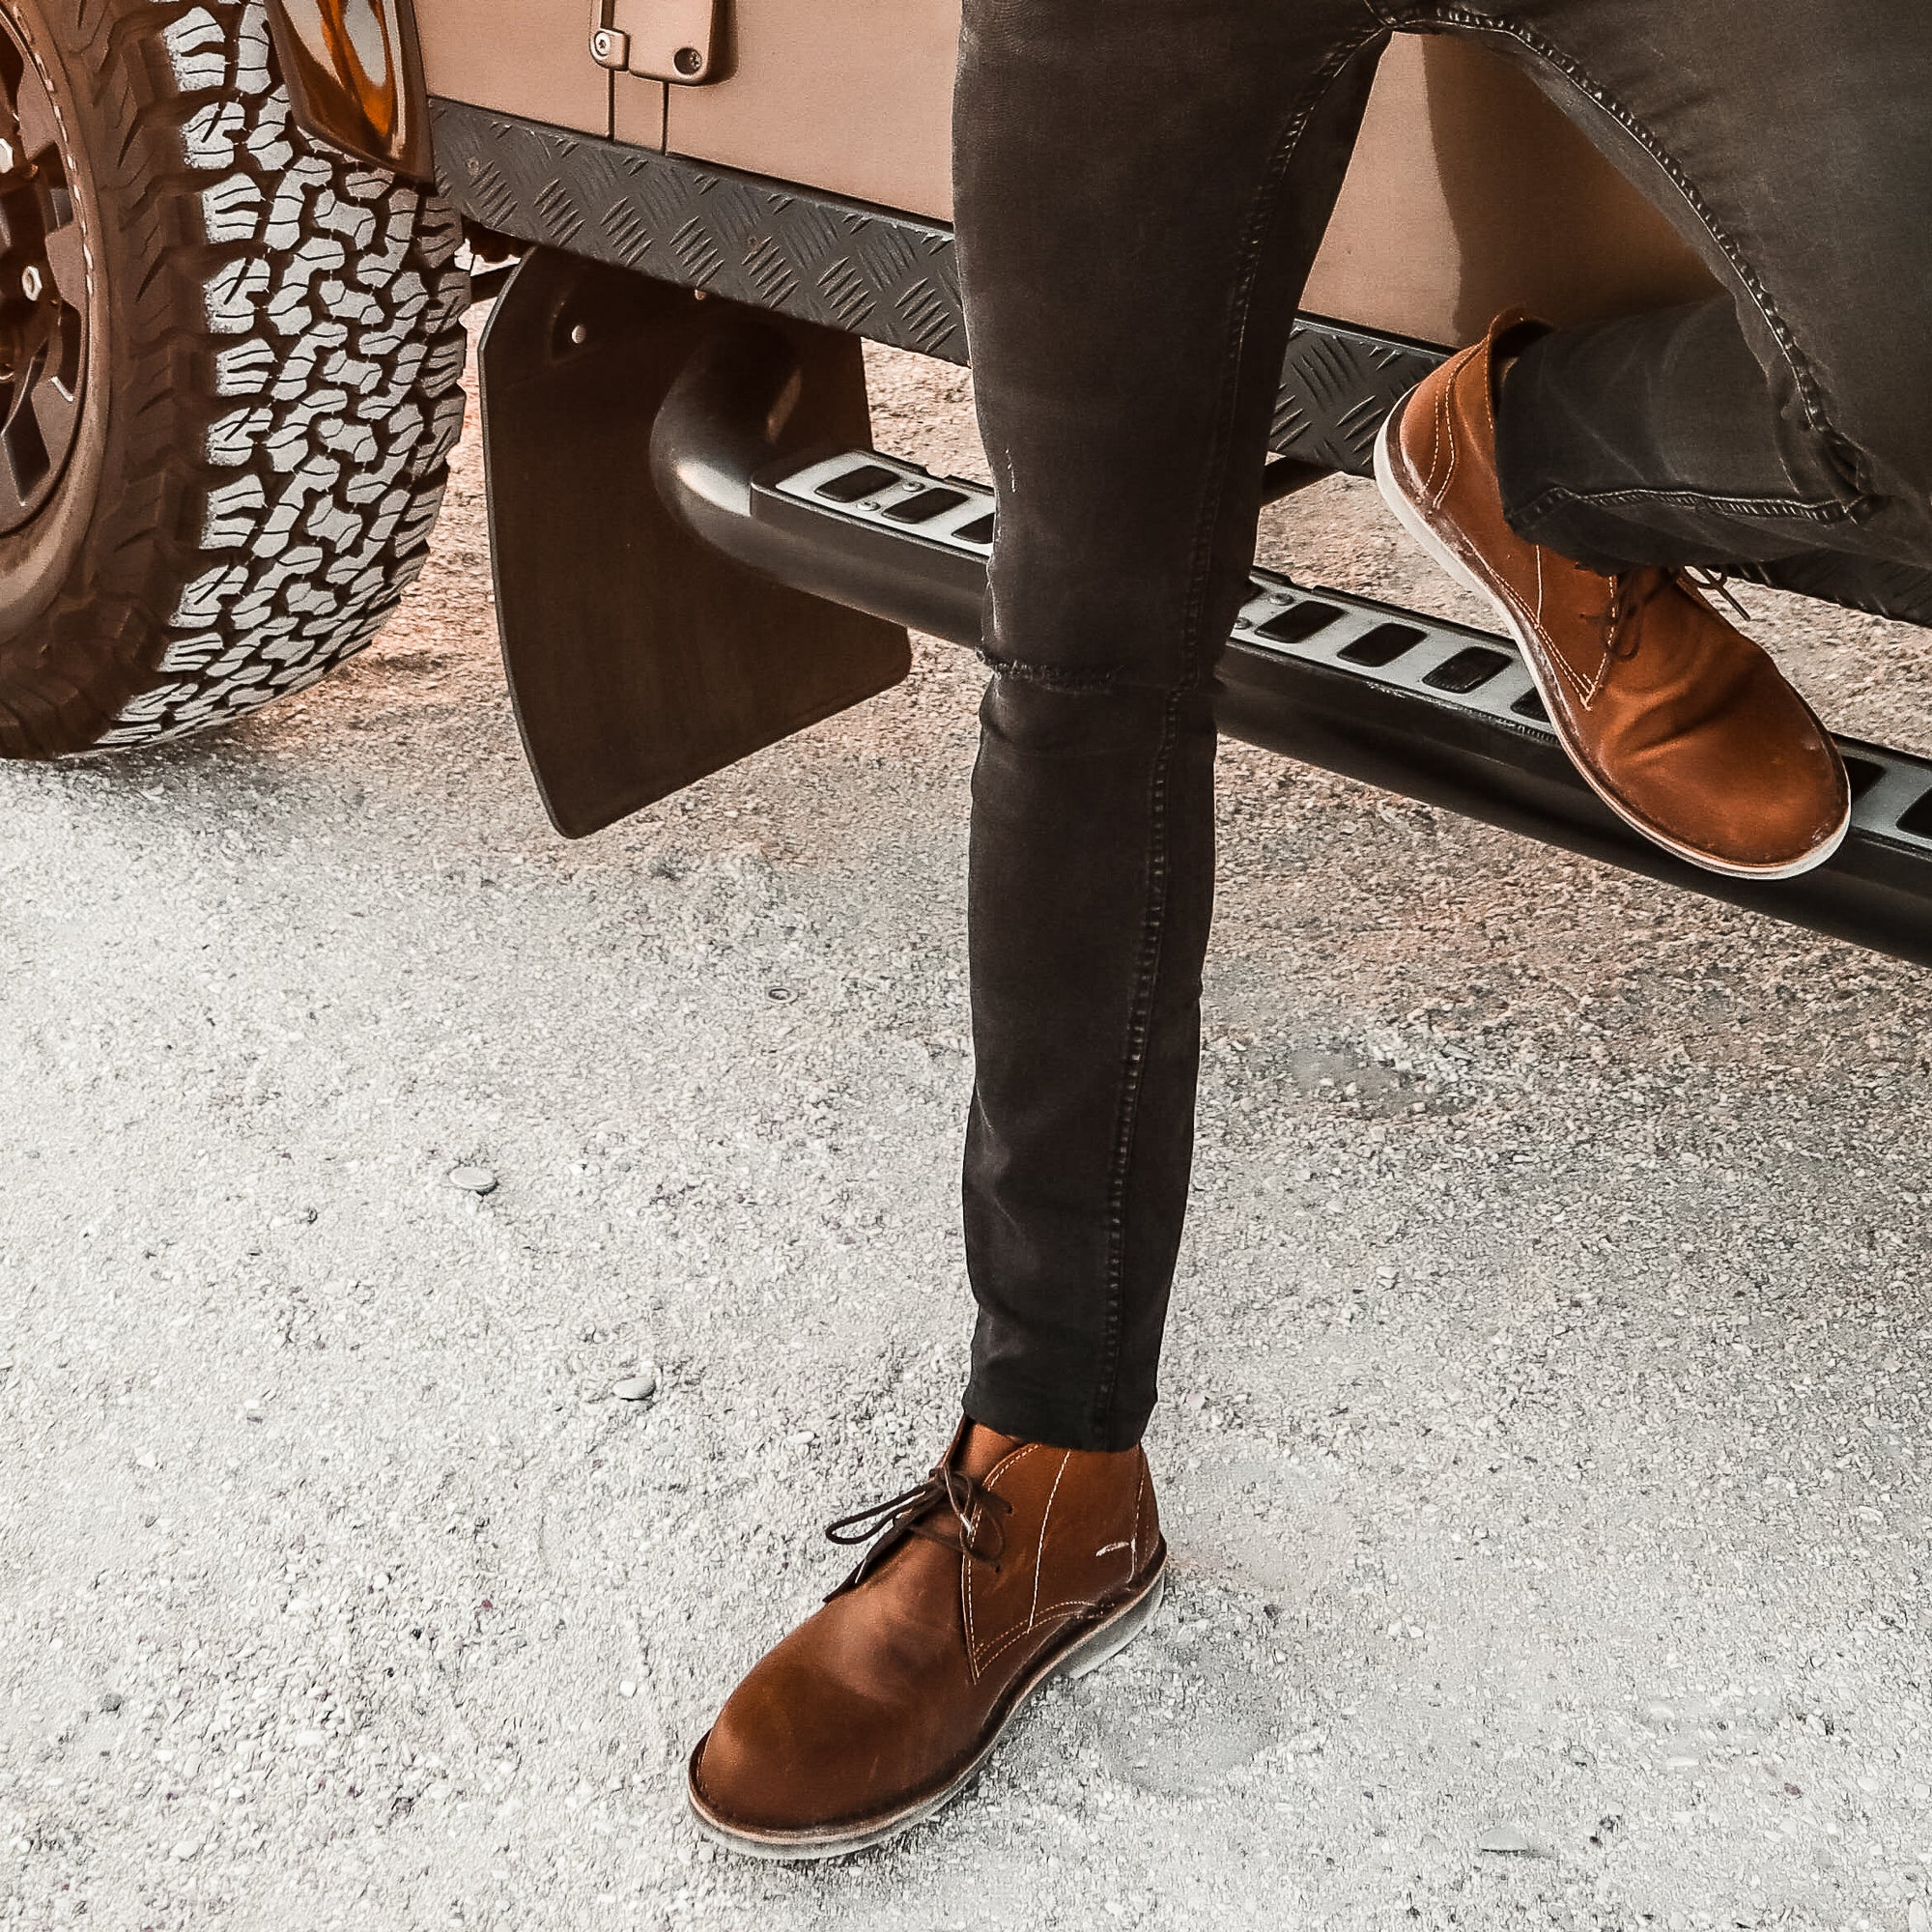 Veldskoen shoes and boots or known as vellies chukka boot ethically and sustainably handcrafted in South Africa sold in united states man standing next to landrover discovery in white sand and wearing black jeans